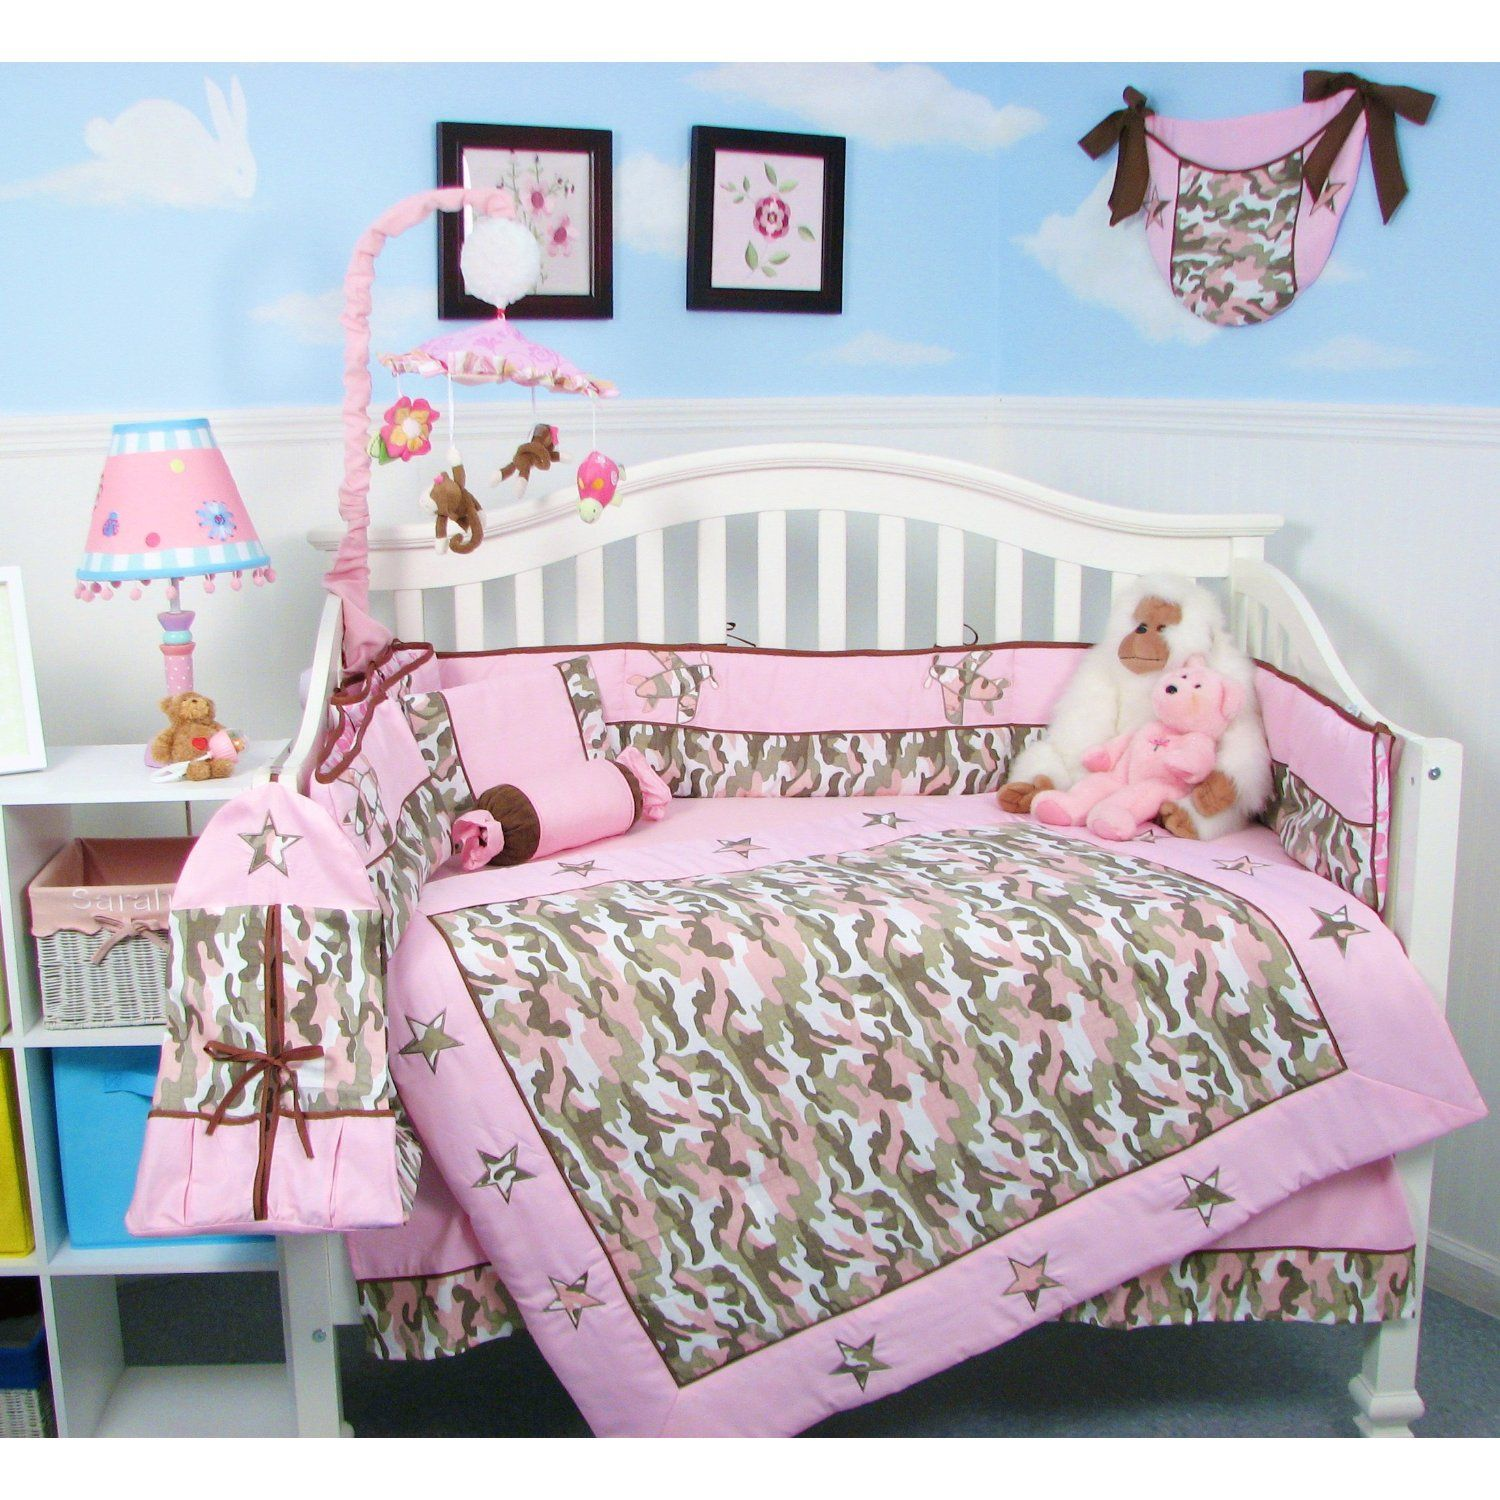 My Baby Girl S Nursery: This Is Camo But Still Looks Like A Baby's Room! This